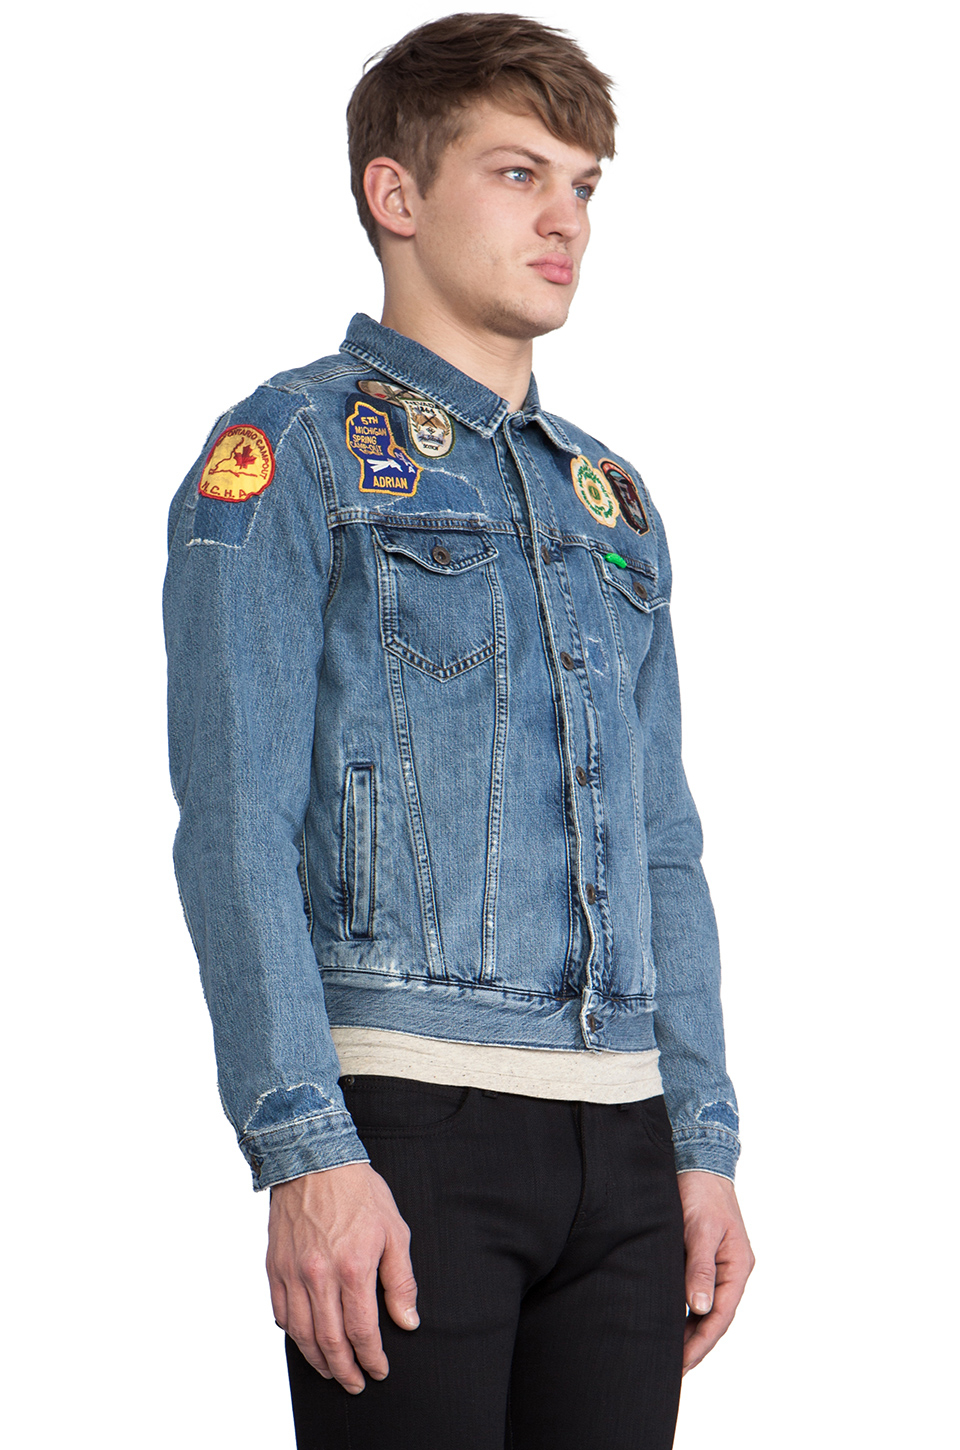 Scotch U0026 Soda Denim Jacket W Patches In Blue In Blue For Men | Lyst